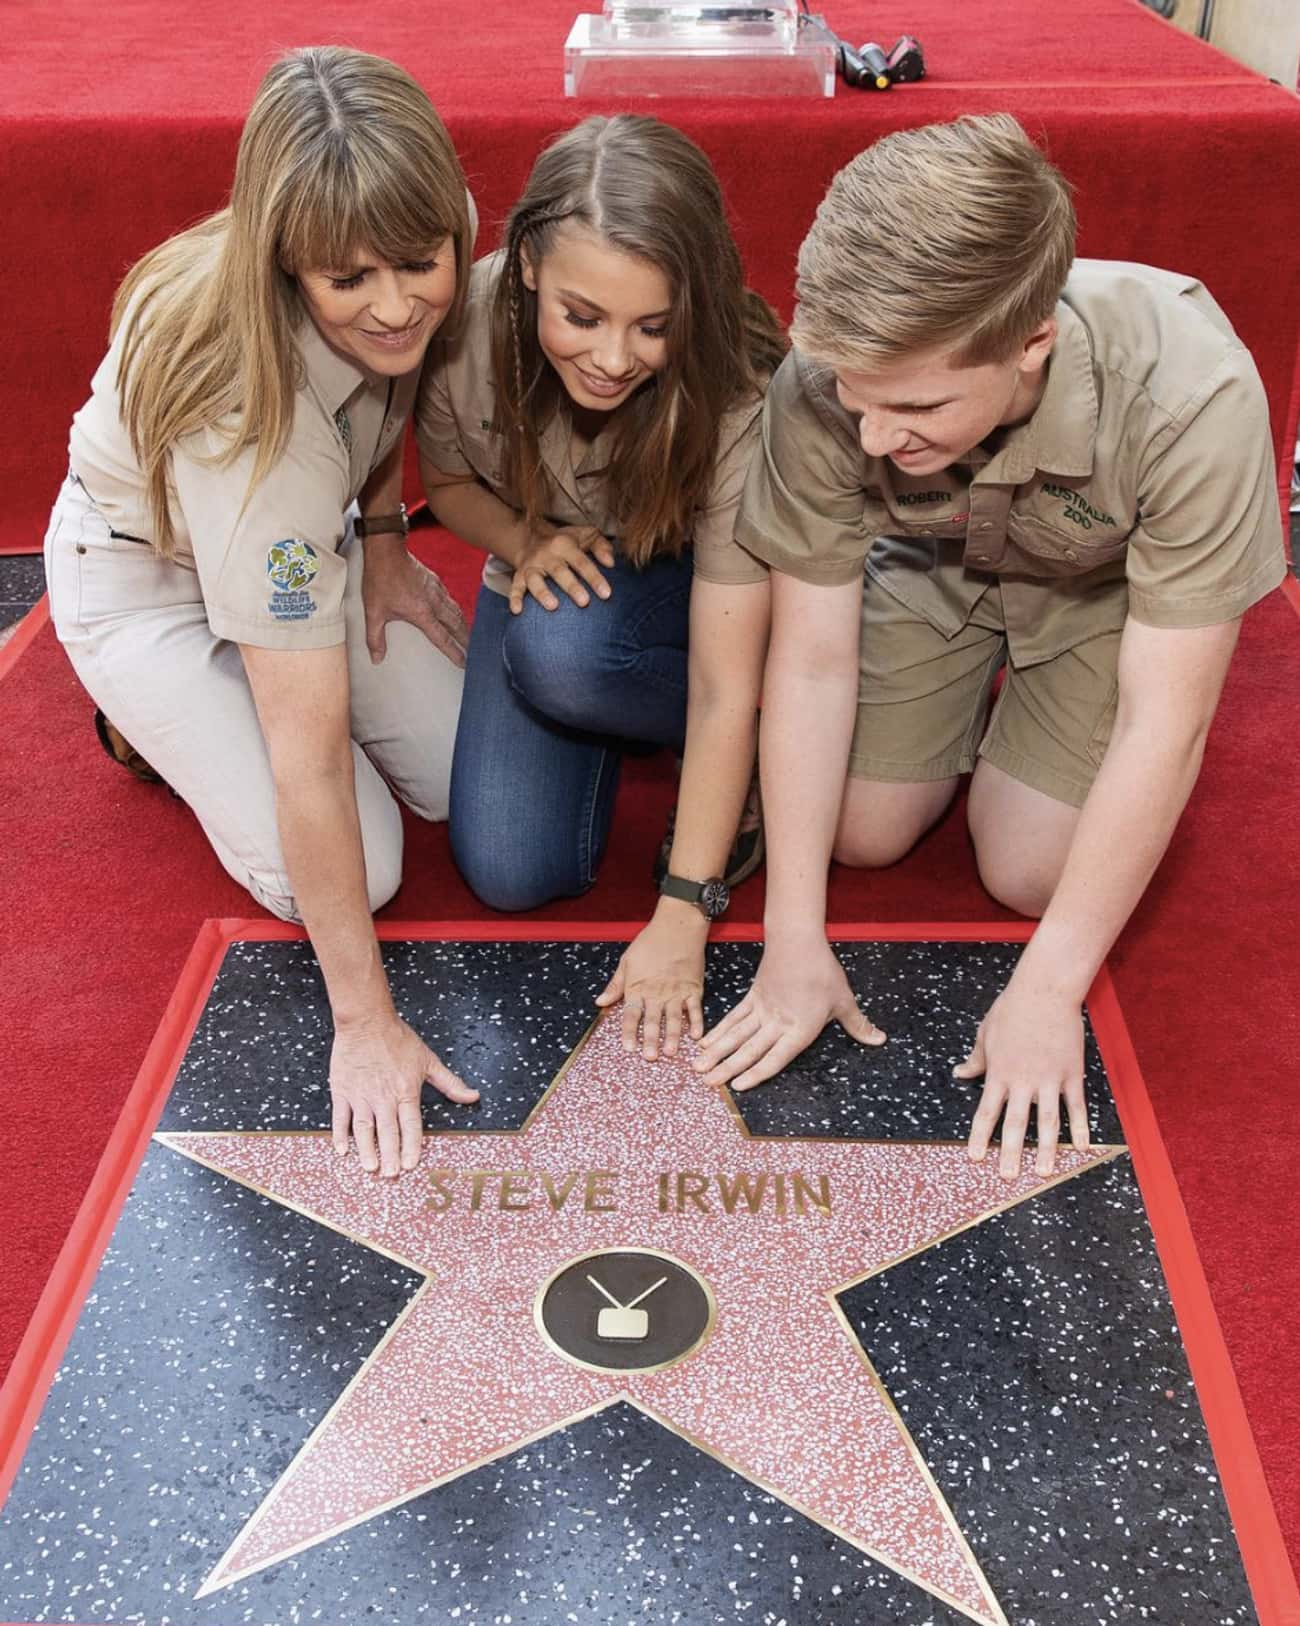 Honoring Her Father On The Hol is listed (or ranked) 2 on the list 18 Photos Of Bindi Irwin That Would Make Her Father, Steve Irwin Proud